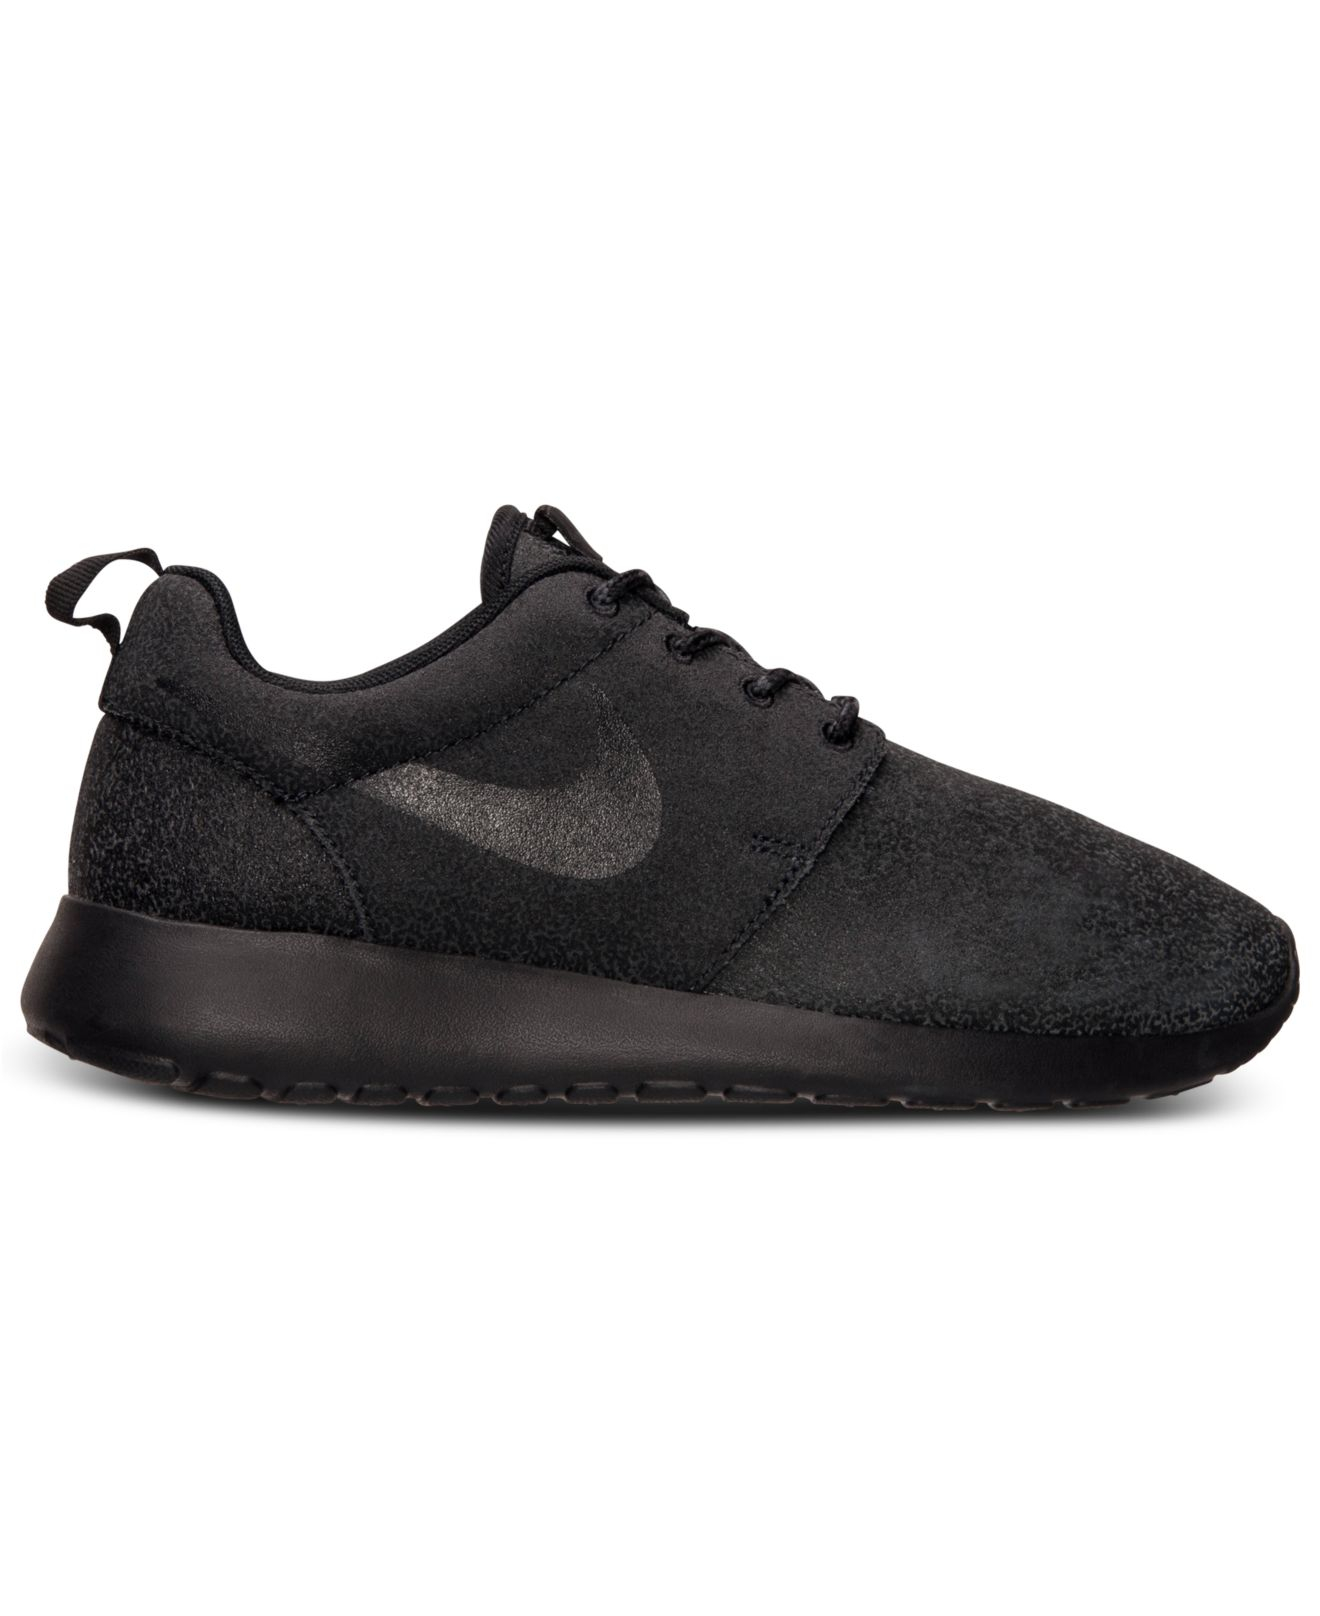 nike men s roshe run casual print grey - Santillana ...